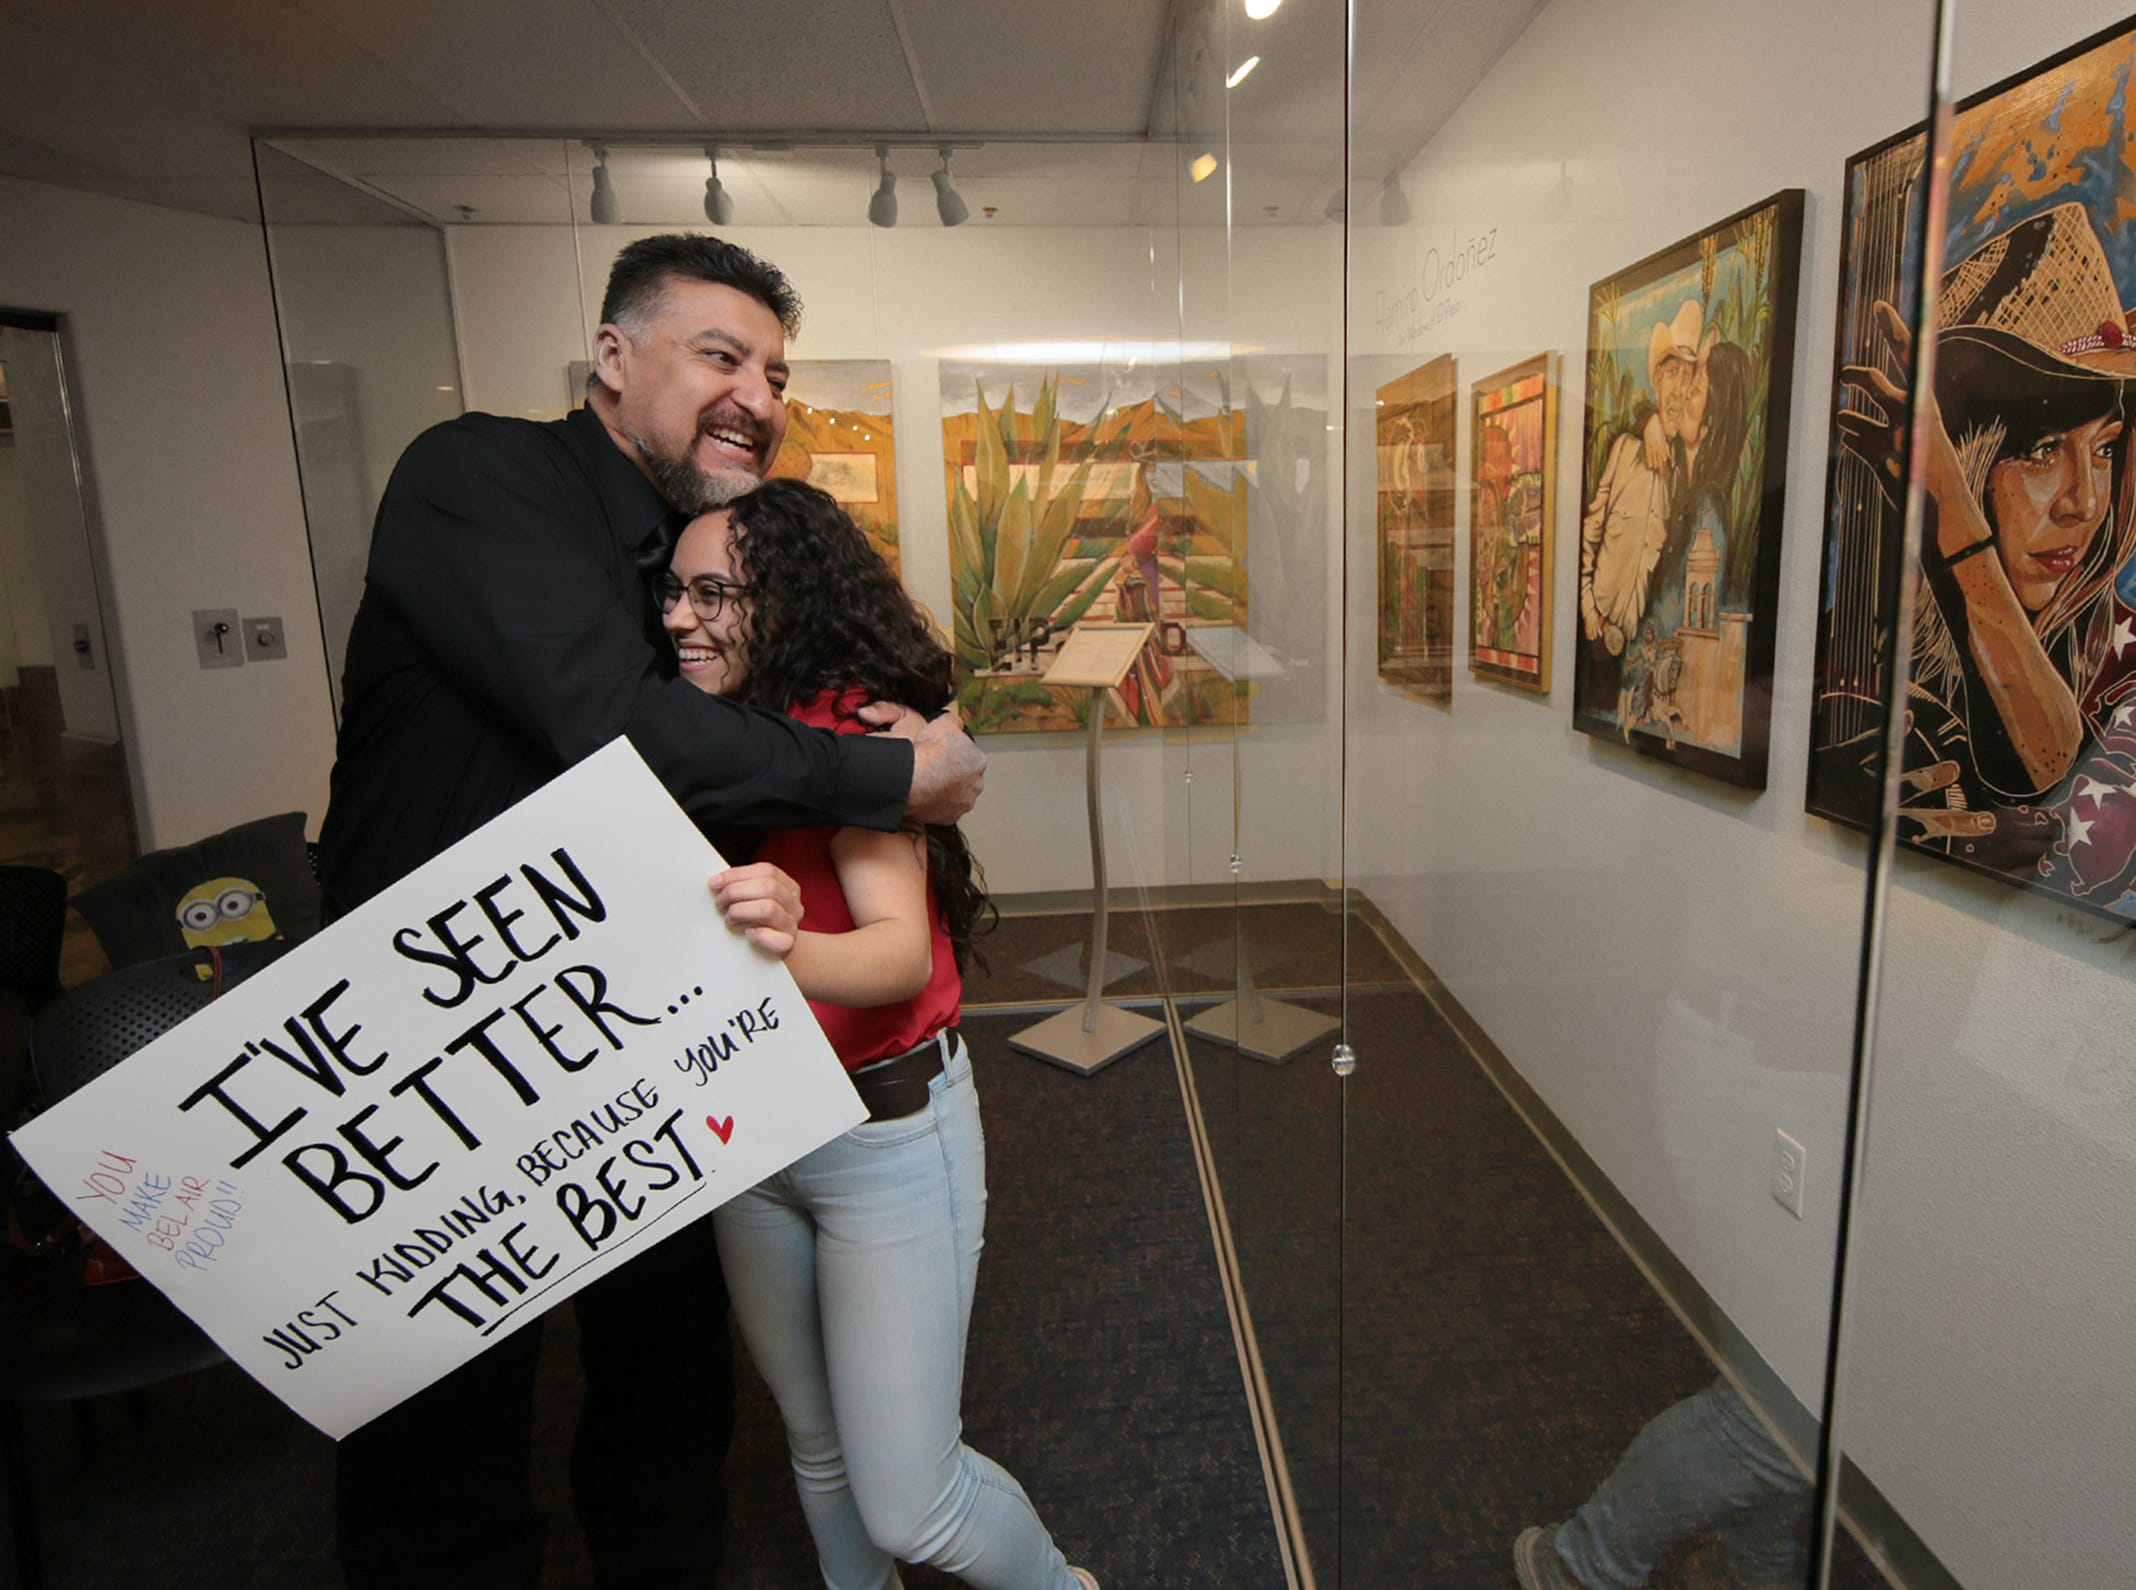 """Artist and art teacher Ramiro Ordoñez hugs his student, Sarah Murillo, who showed up to his gallery opening Friday, March 8, 2019, at the El Paso International Airport with a sign that reads, """"I've seen better."""" The Bel Air High School student said he often jokes that he's seen better when turning in work. Ordoñez and Adrian Lopez opened their exhibit Friday at the Art Windows of El Paso exhibit."""